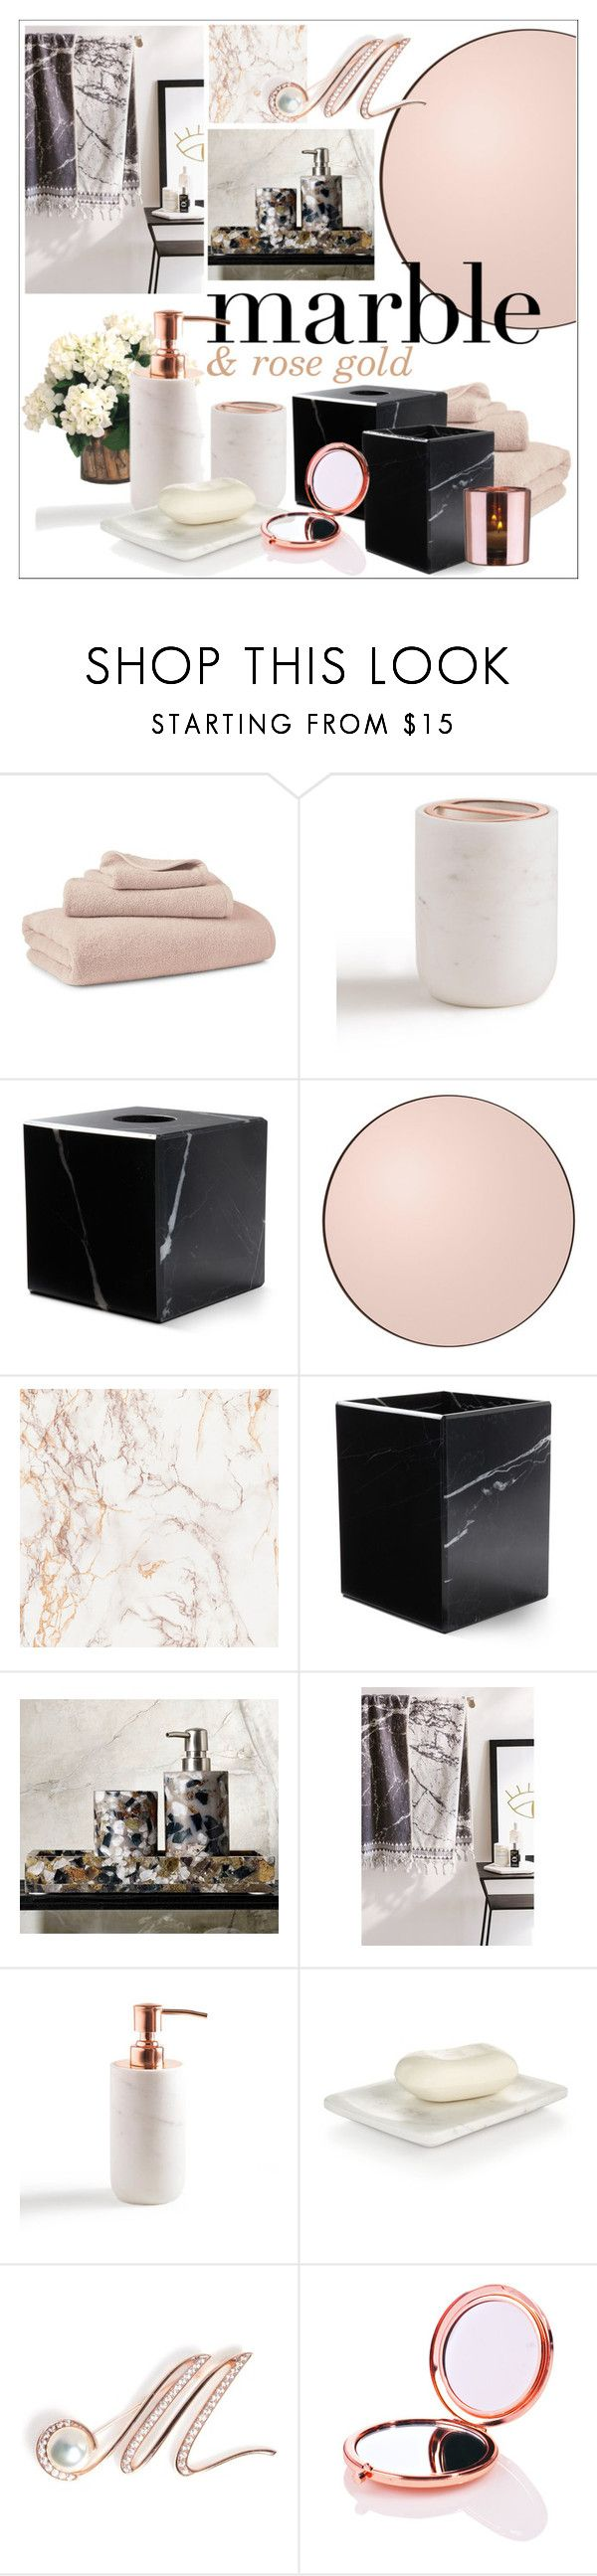 """Marble & Rose Gold in the bathroom"" by szaboesz ❤ liked on Polyvore featuring interior, interiors, interior design, home, home decor, interior decorating, Ralph Lauren, Grandin Road, Waterworks and Urban Outfitters"